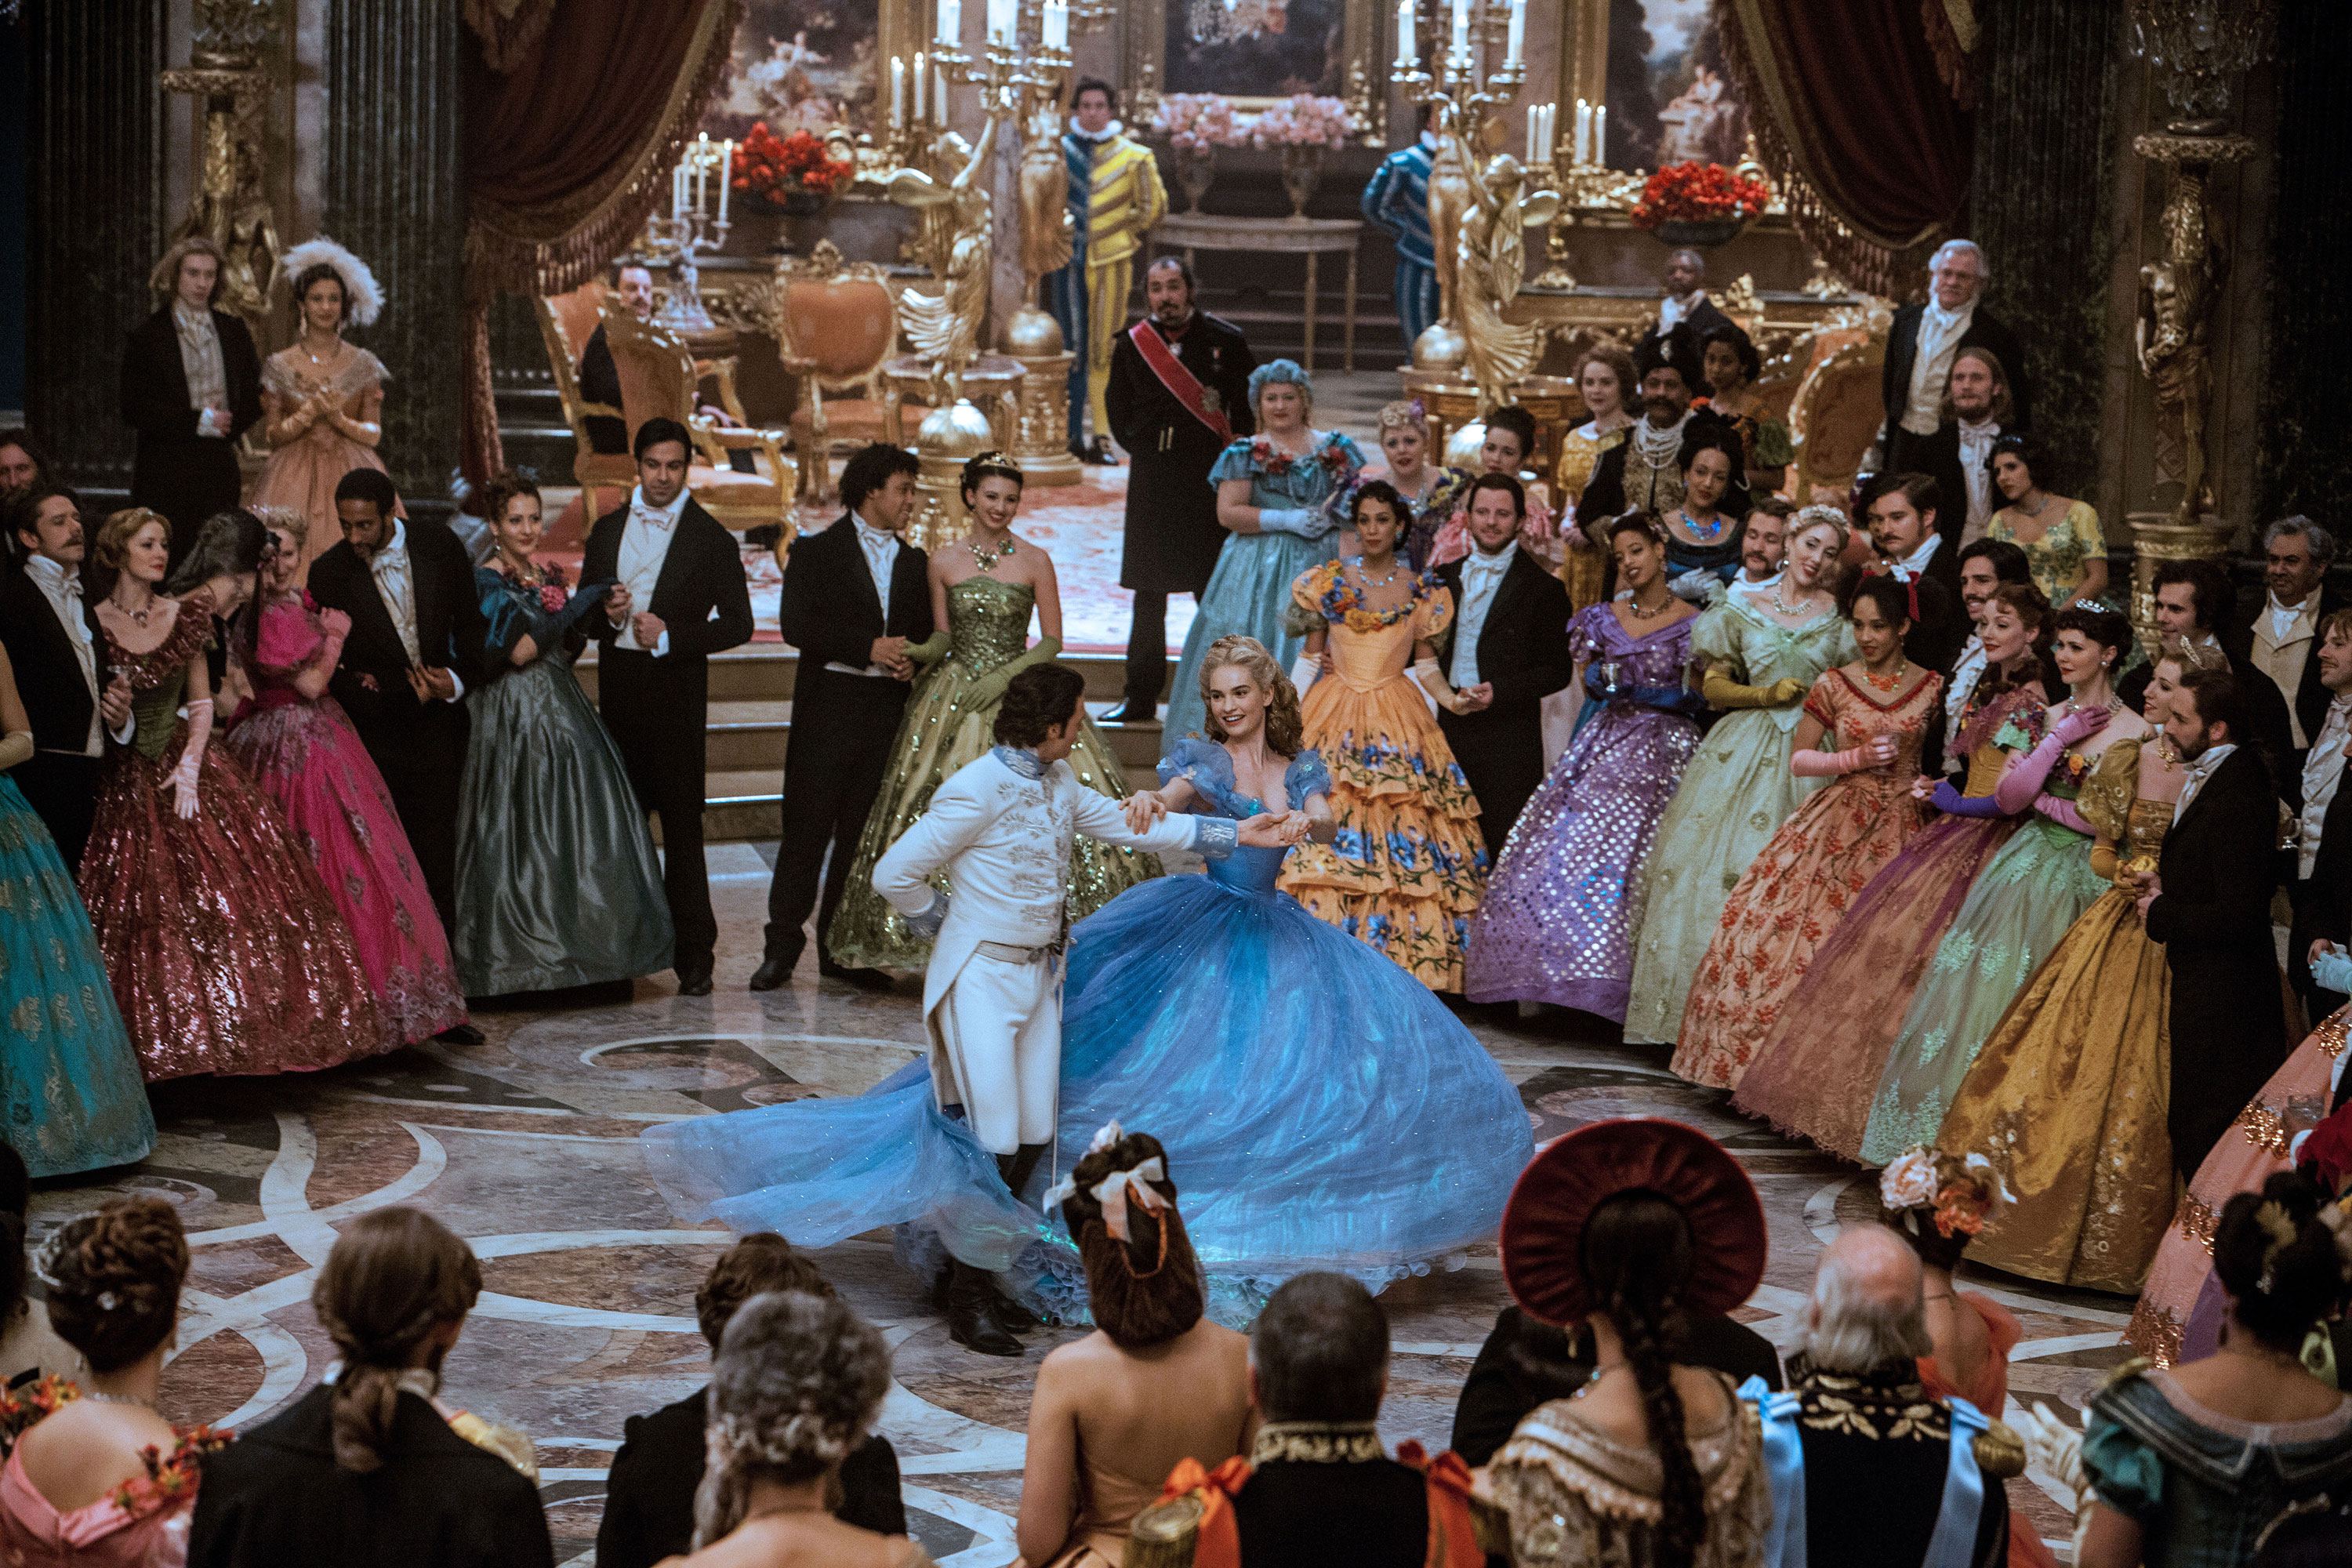 genre in cinderella You are watching now the cinderella (2015) movie has drama family fantasy romance genres and produced in uk, usa with 105 min runtime brought to you by watch4hdcom and directed by kenneth branagh, when her father unexpectedly passes.